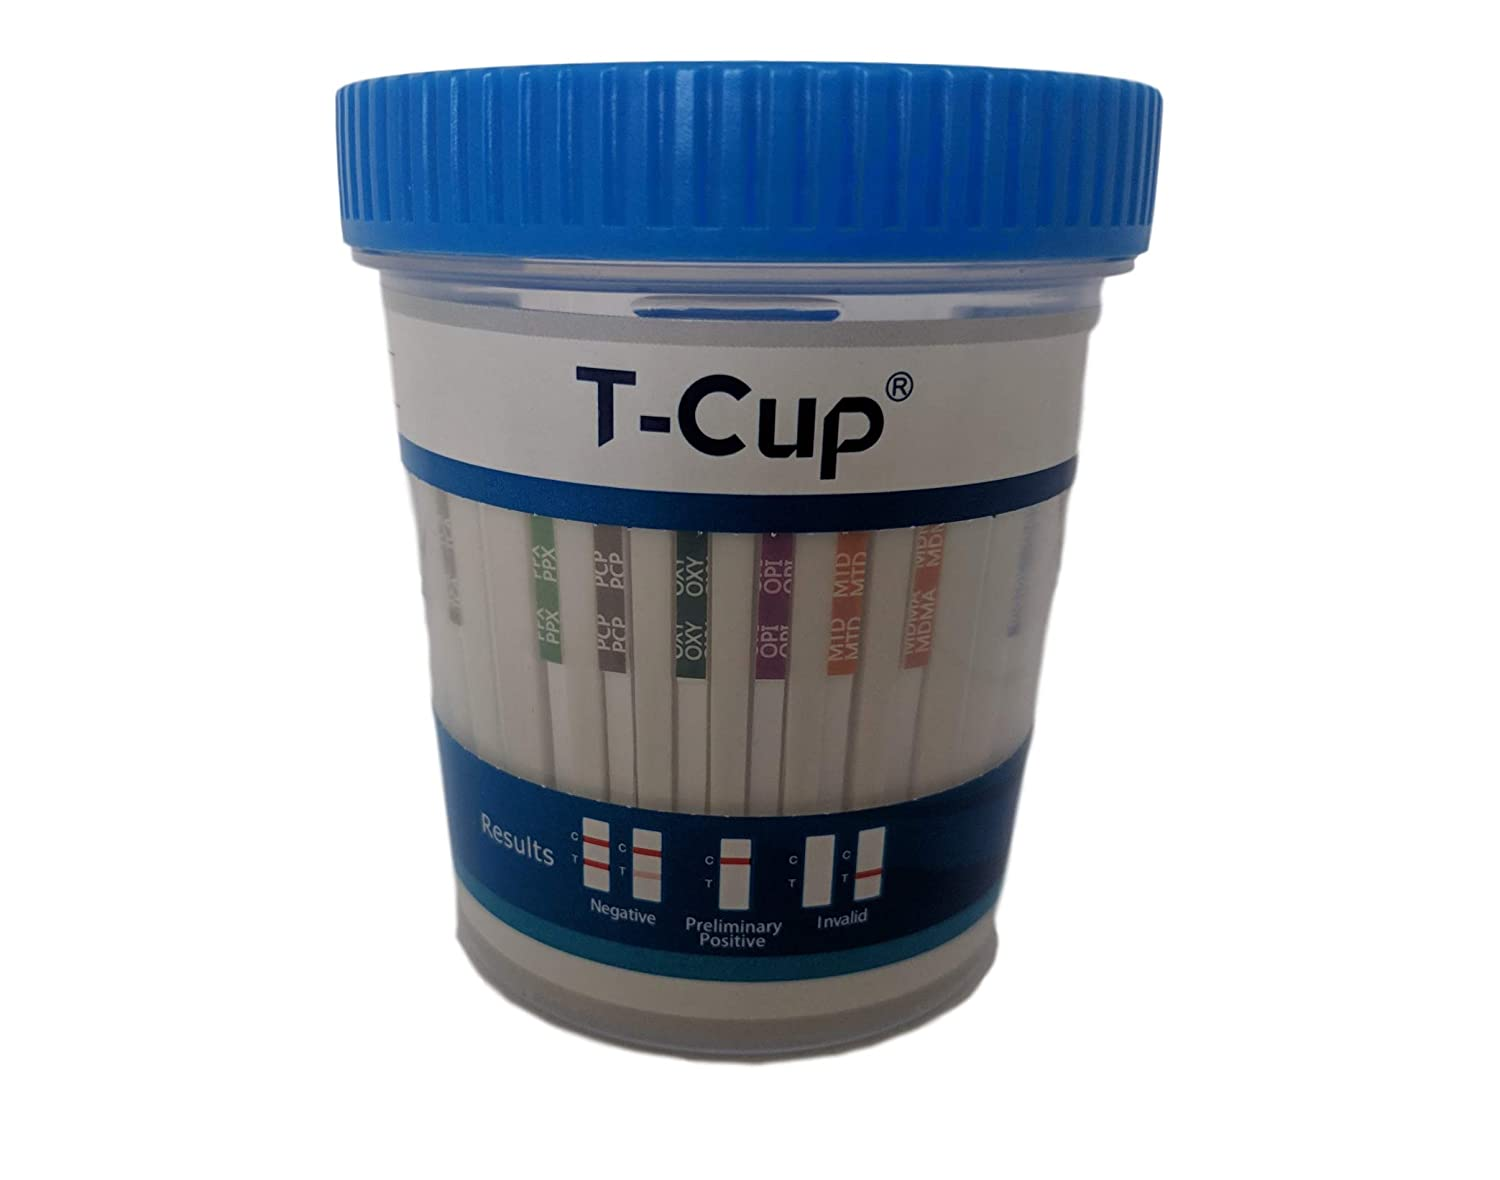 100 Pack of 14-Panel Drug Testing KitIncluding 3 Adulterate Test. Test Instantly for 14 Different Drugs.